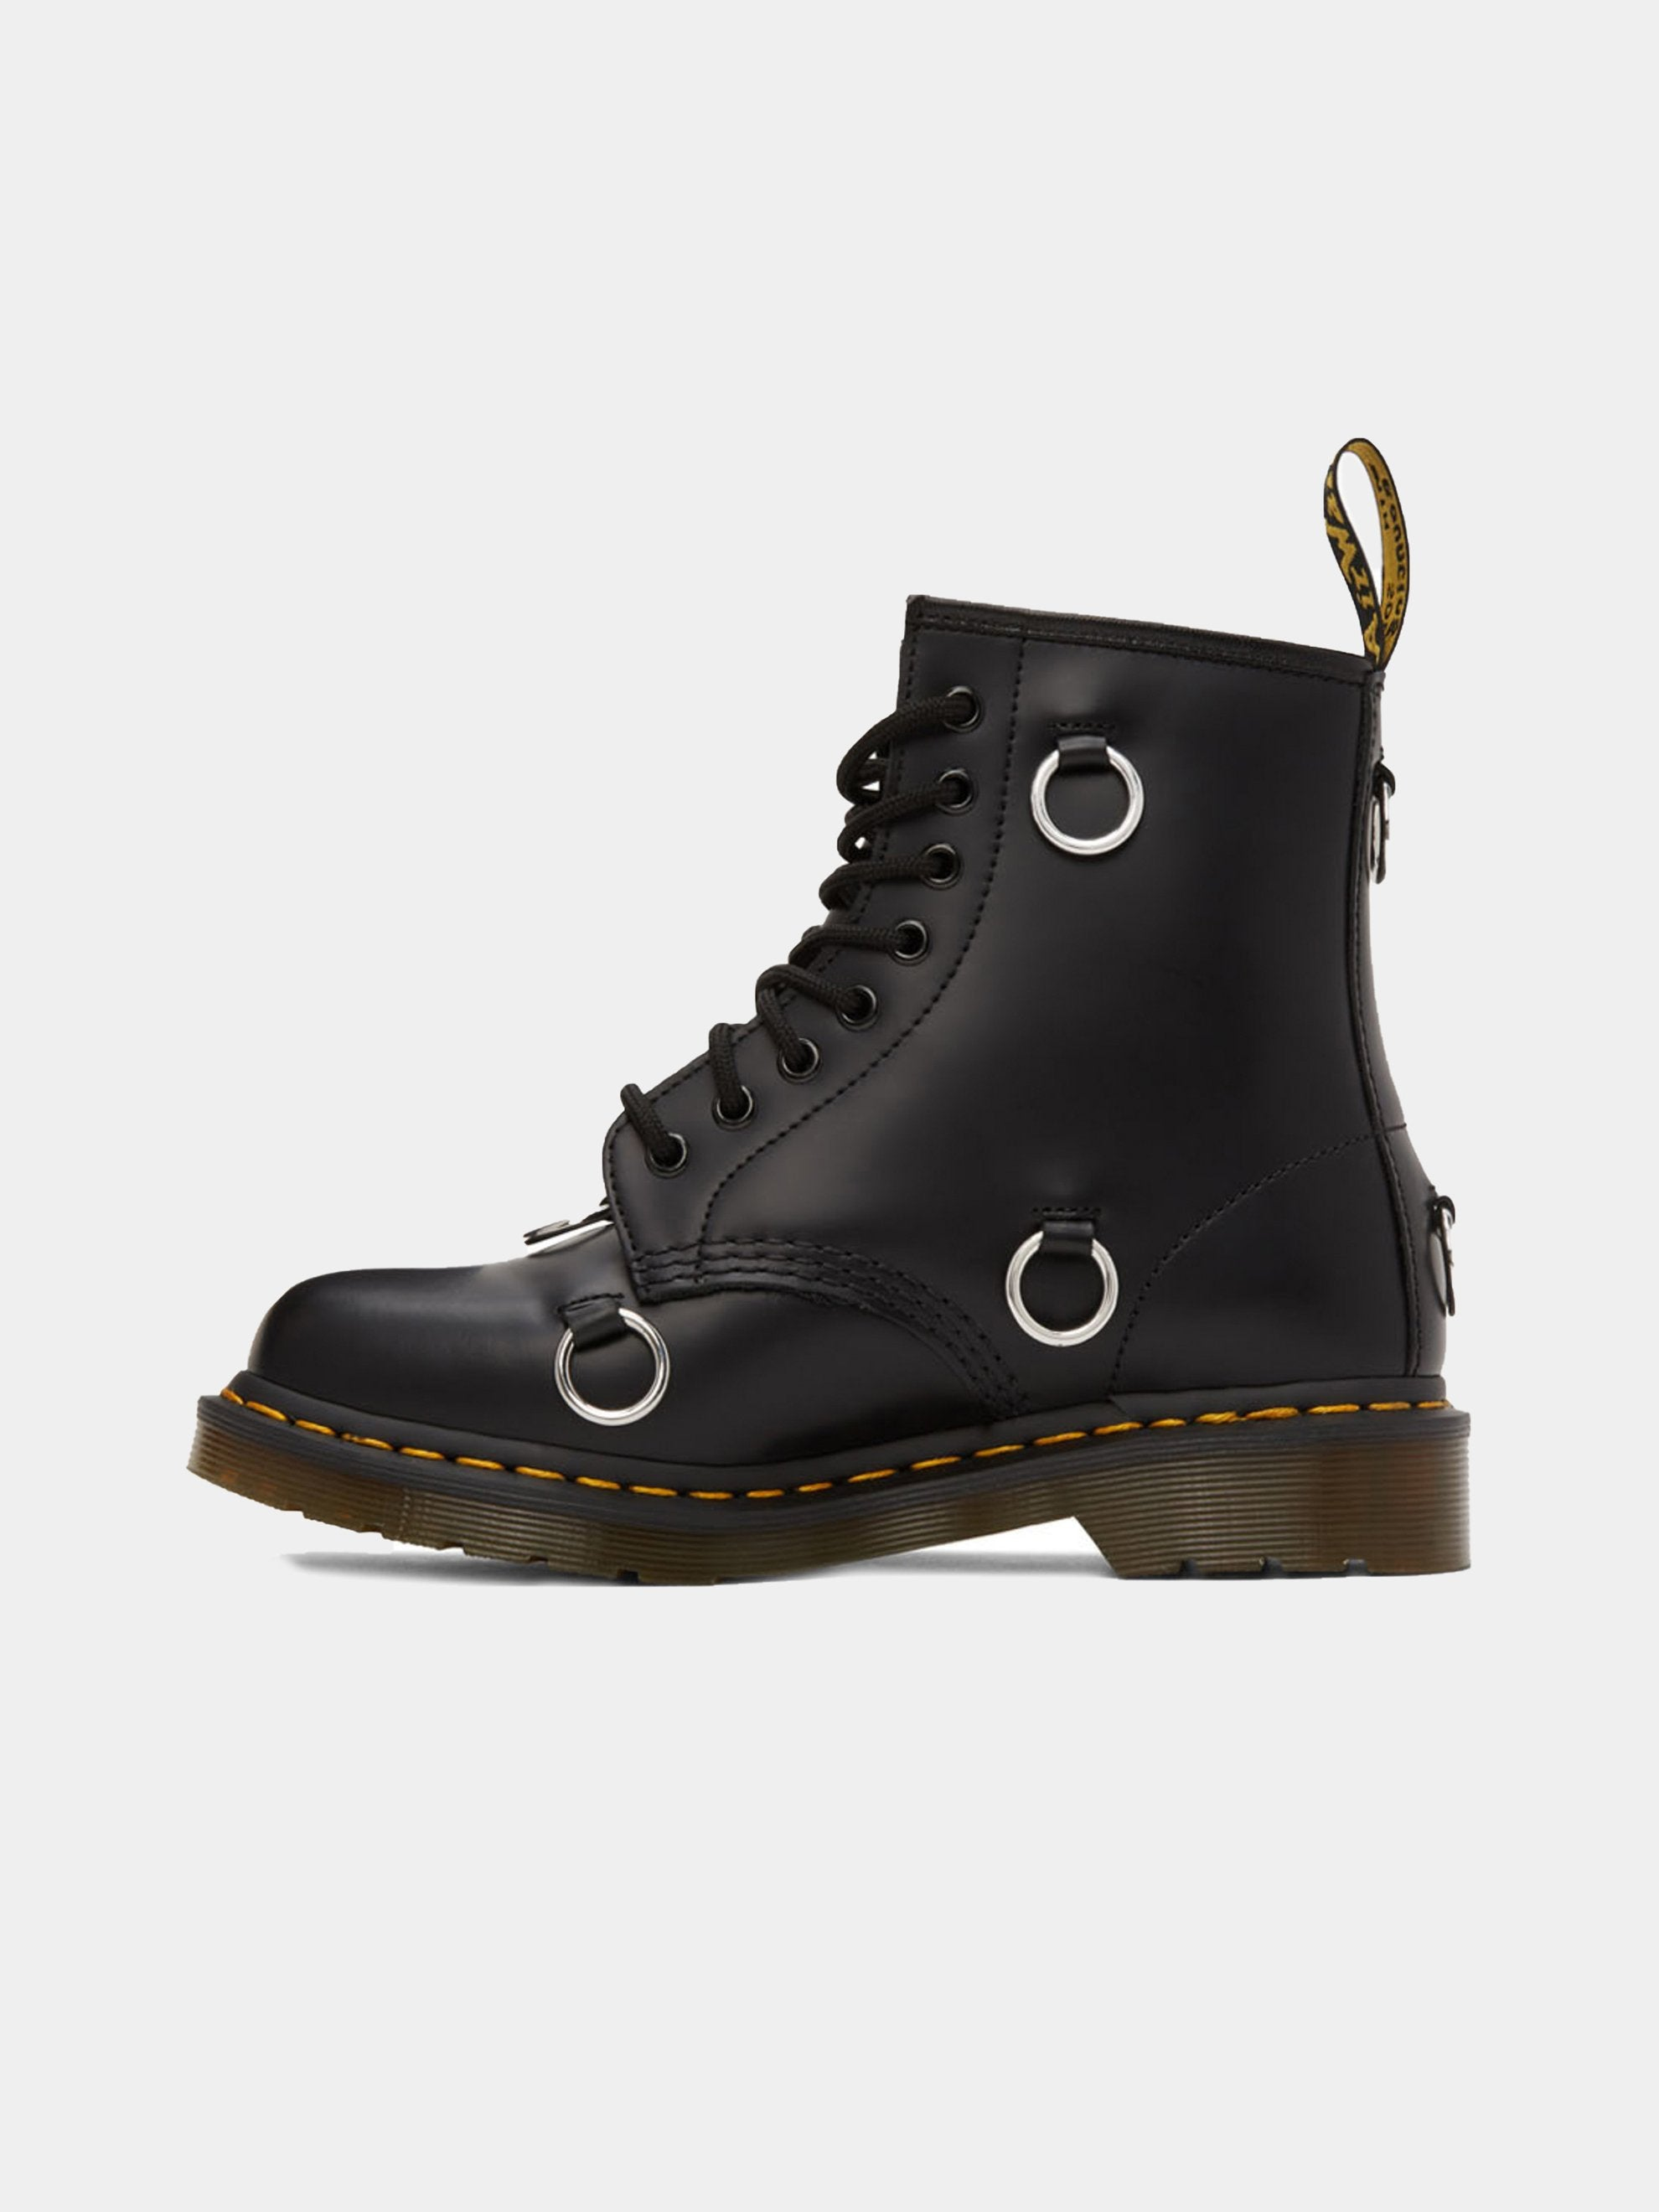 Black Dr. Martens High Boot With Rings 4